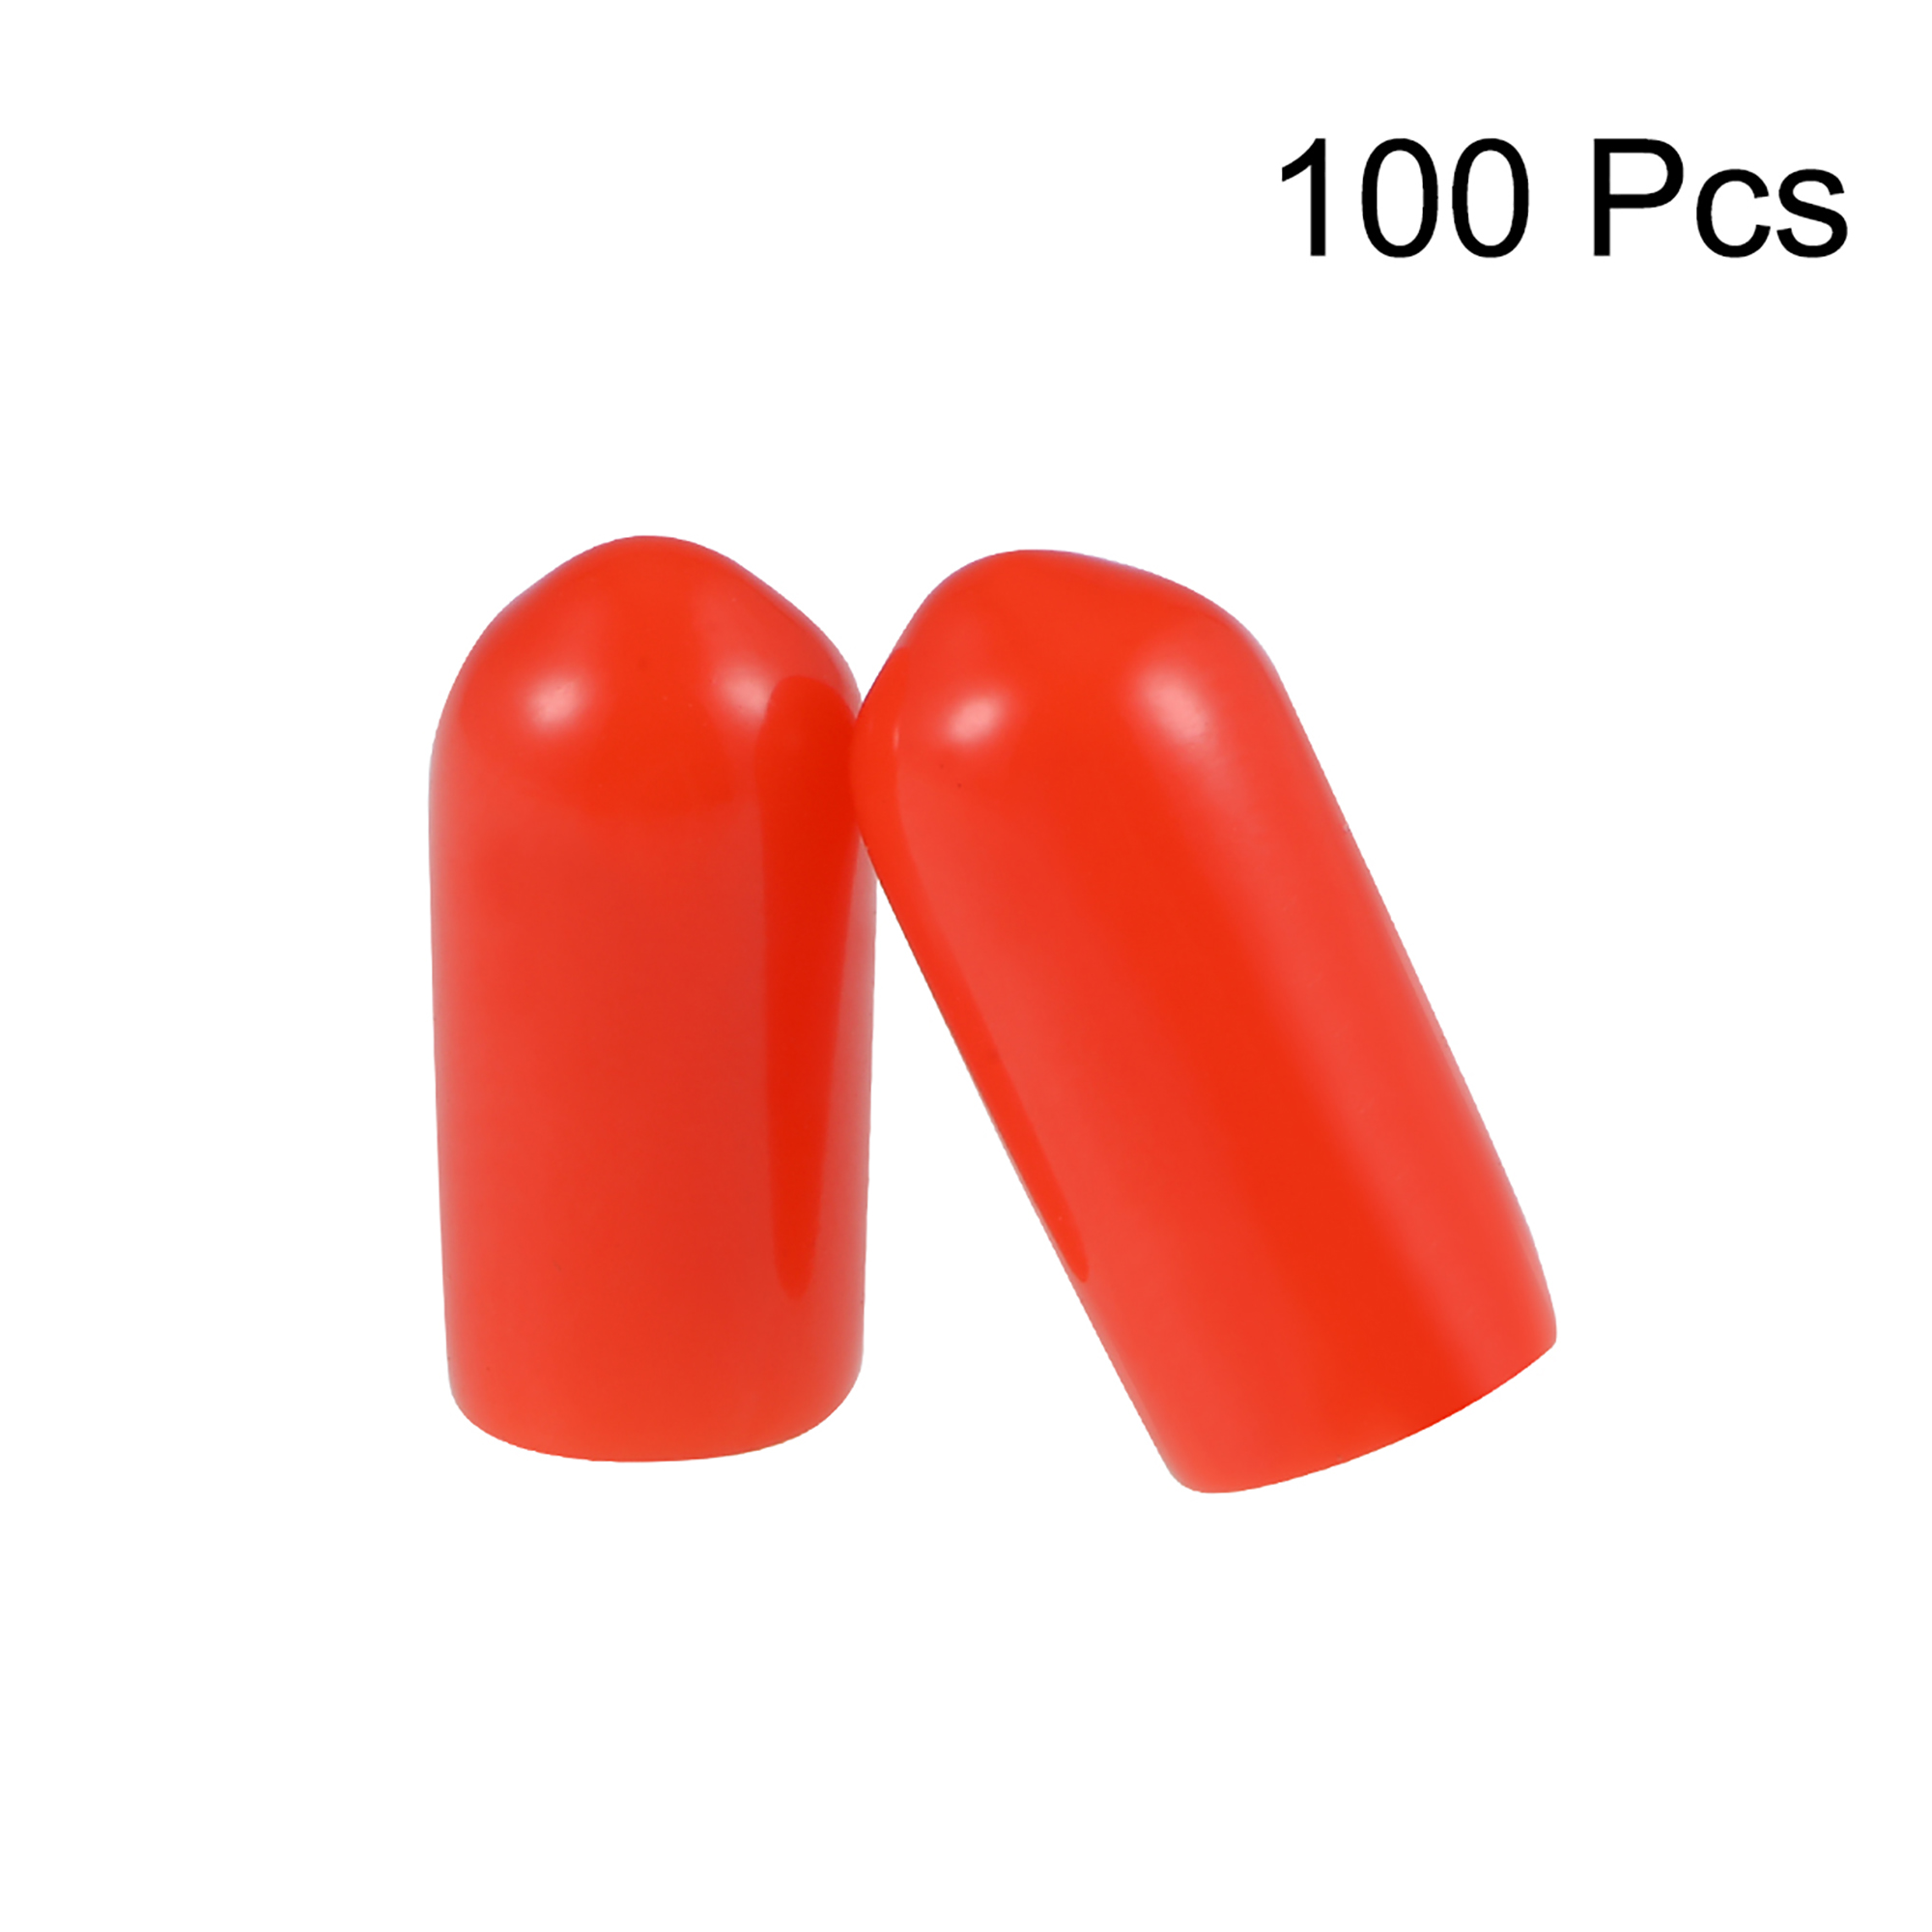 uxcell Screw Thread Protectors 5.5mm ID Round End Cap Cover Red Flexible Tube Caps Tubing Tip 100pcs